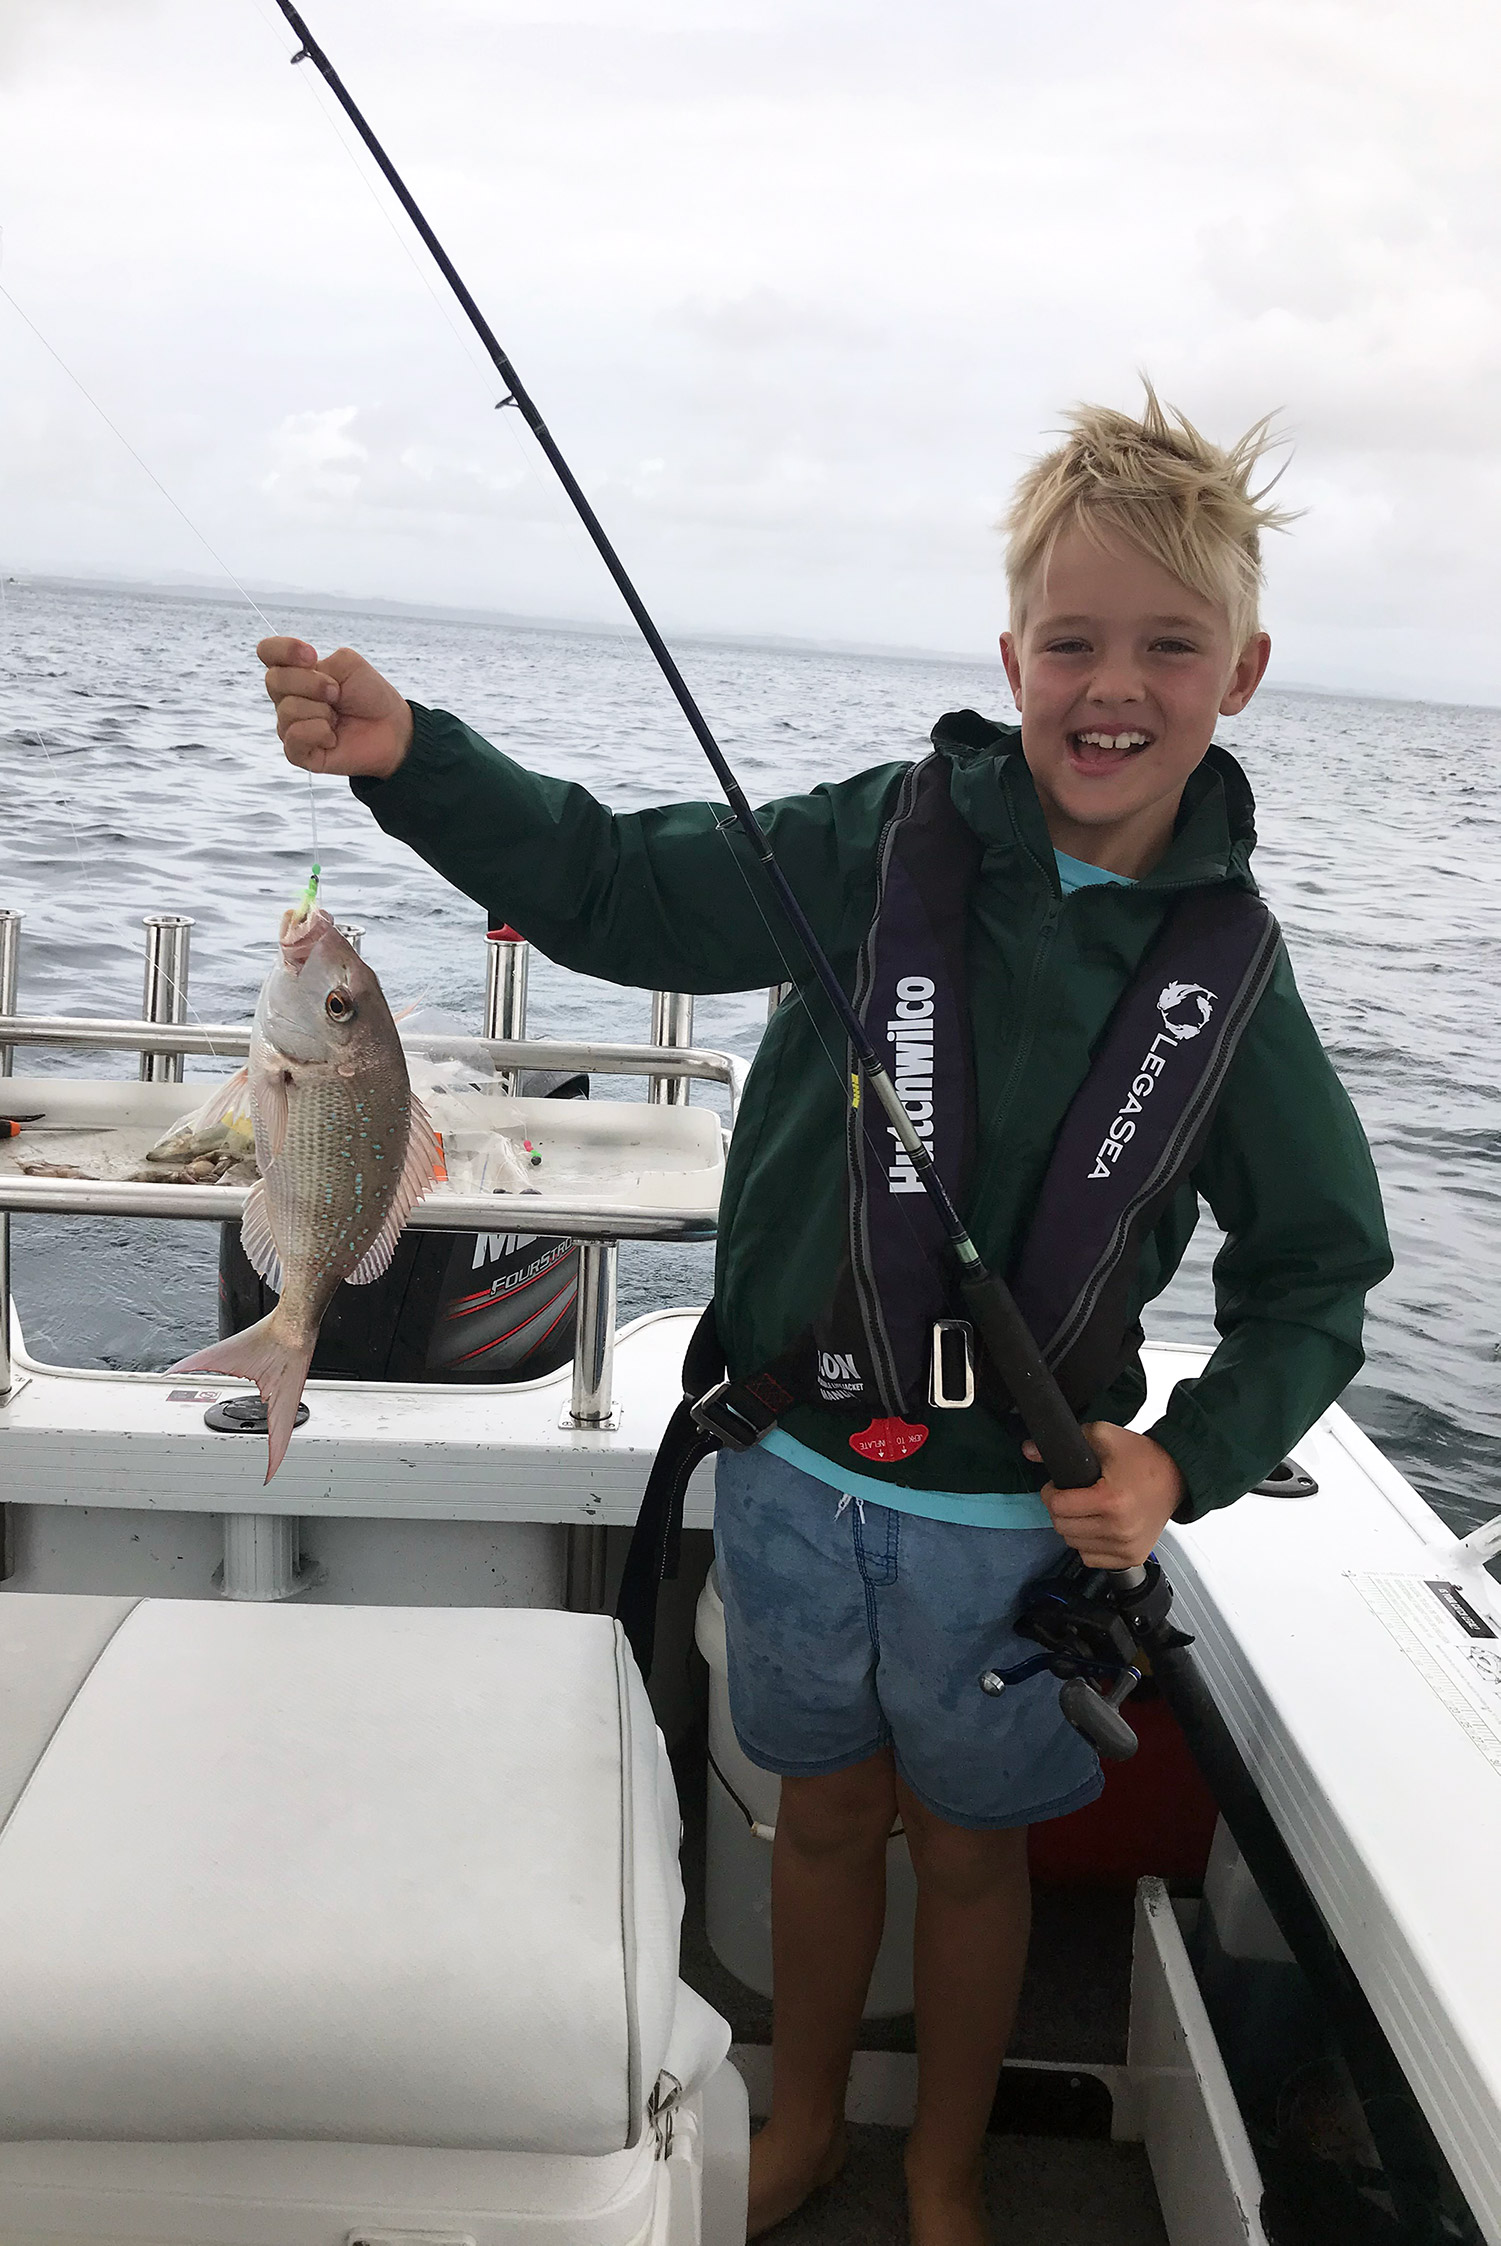 A child fishing for snapper in New Zealand.